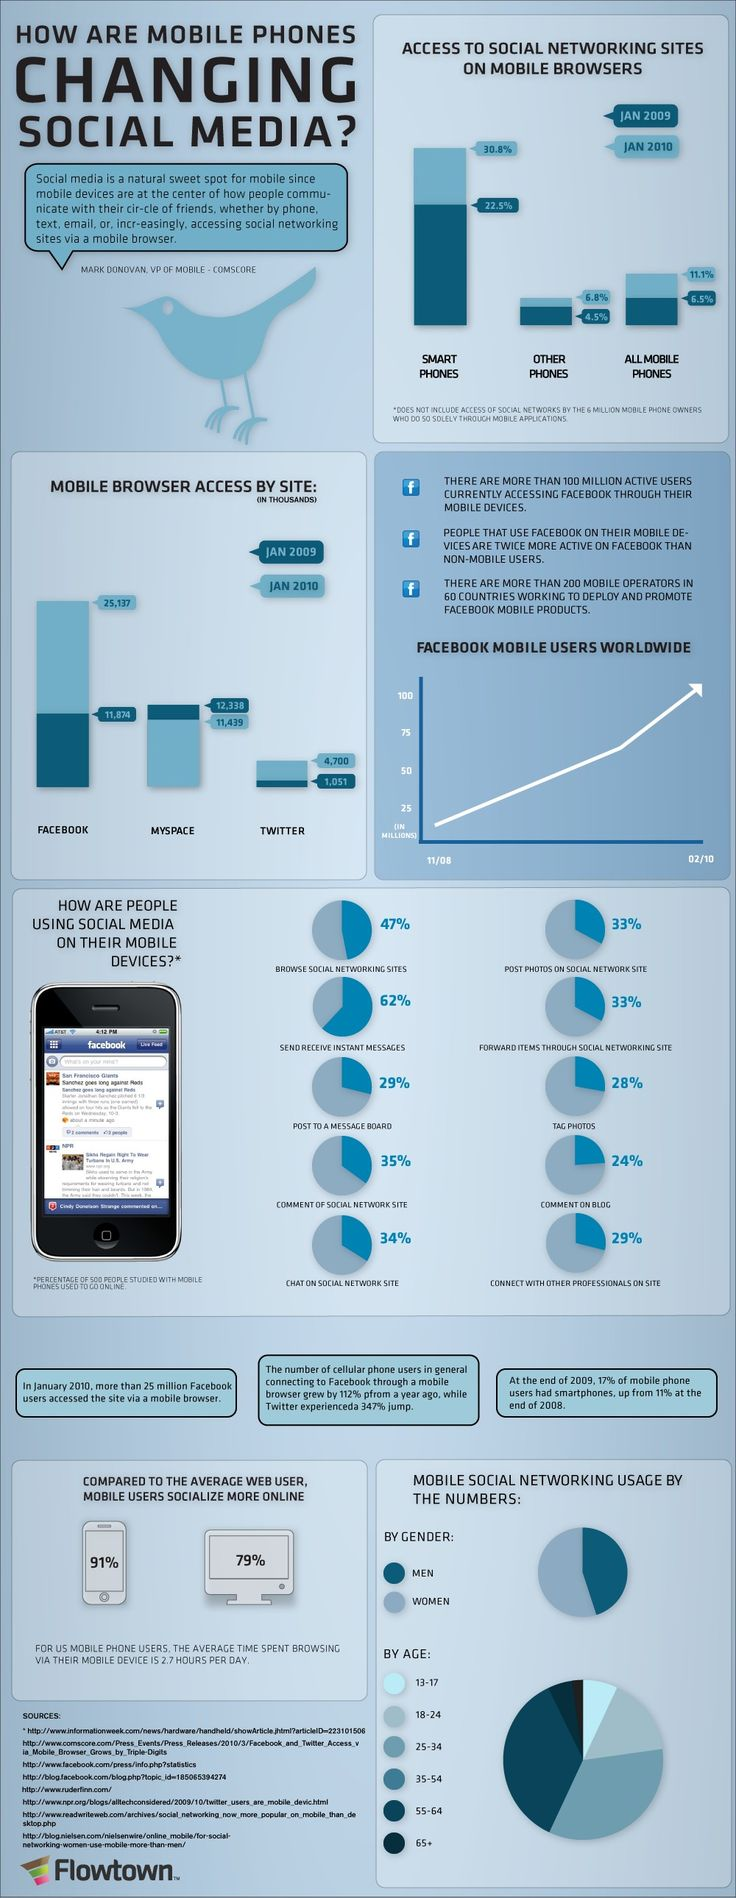 Social networking on mobile phones